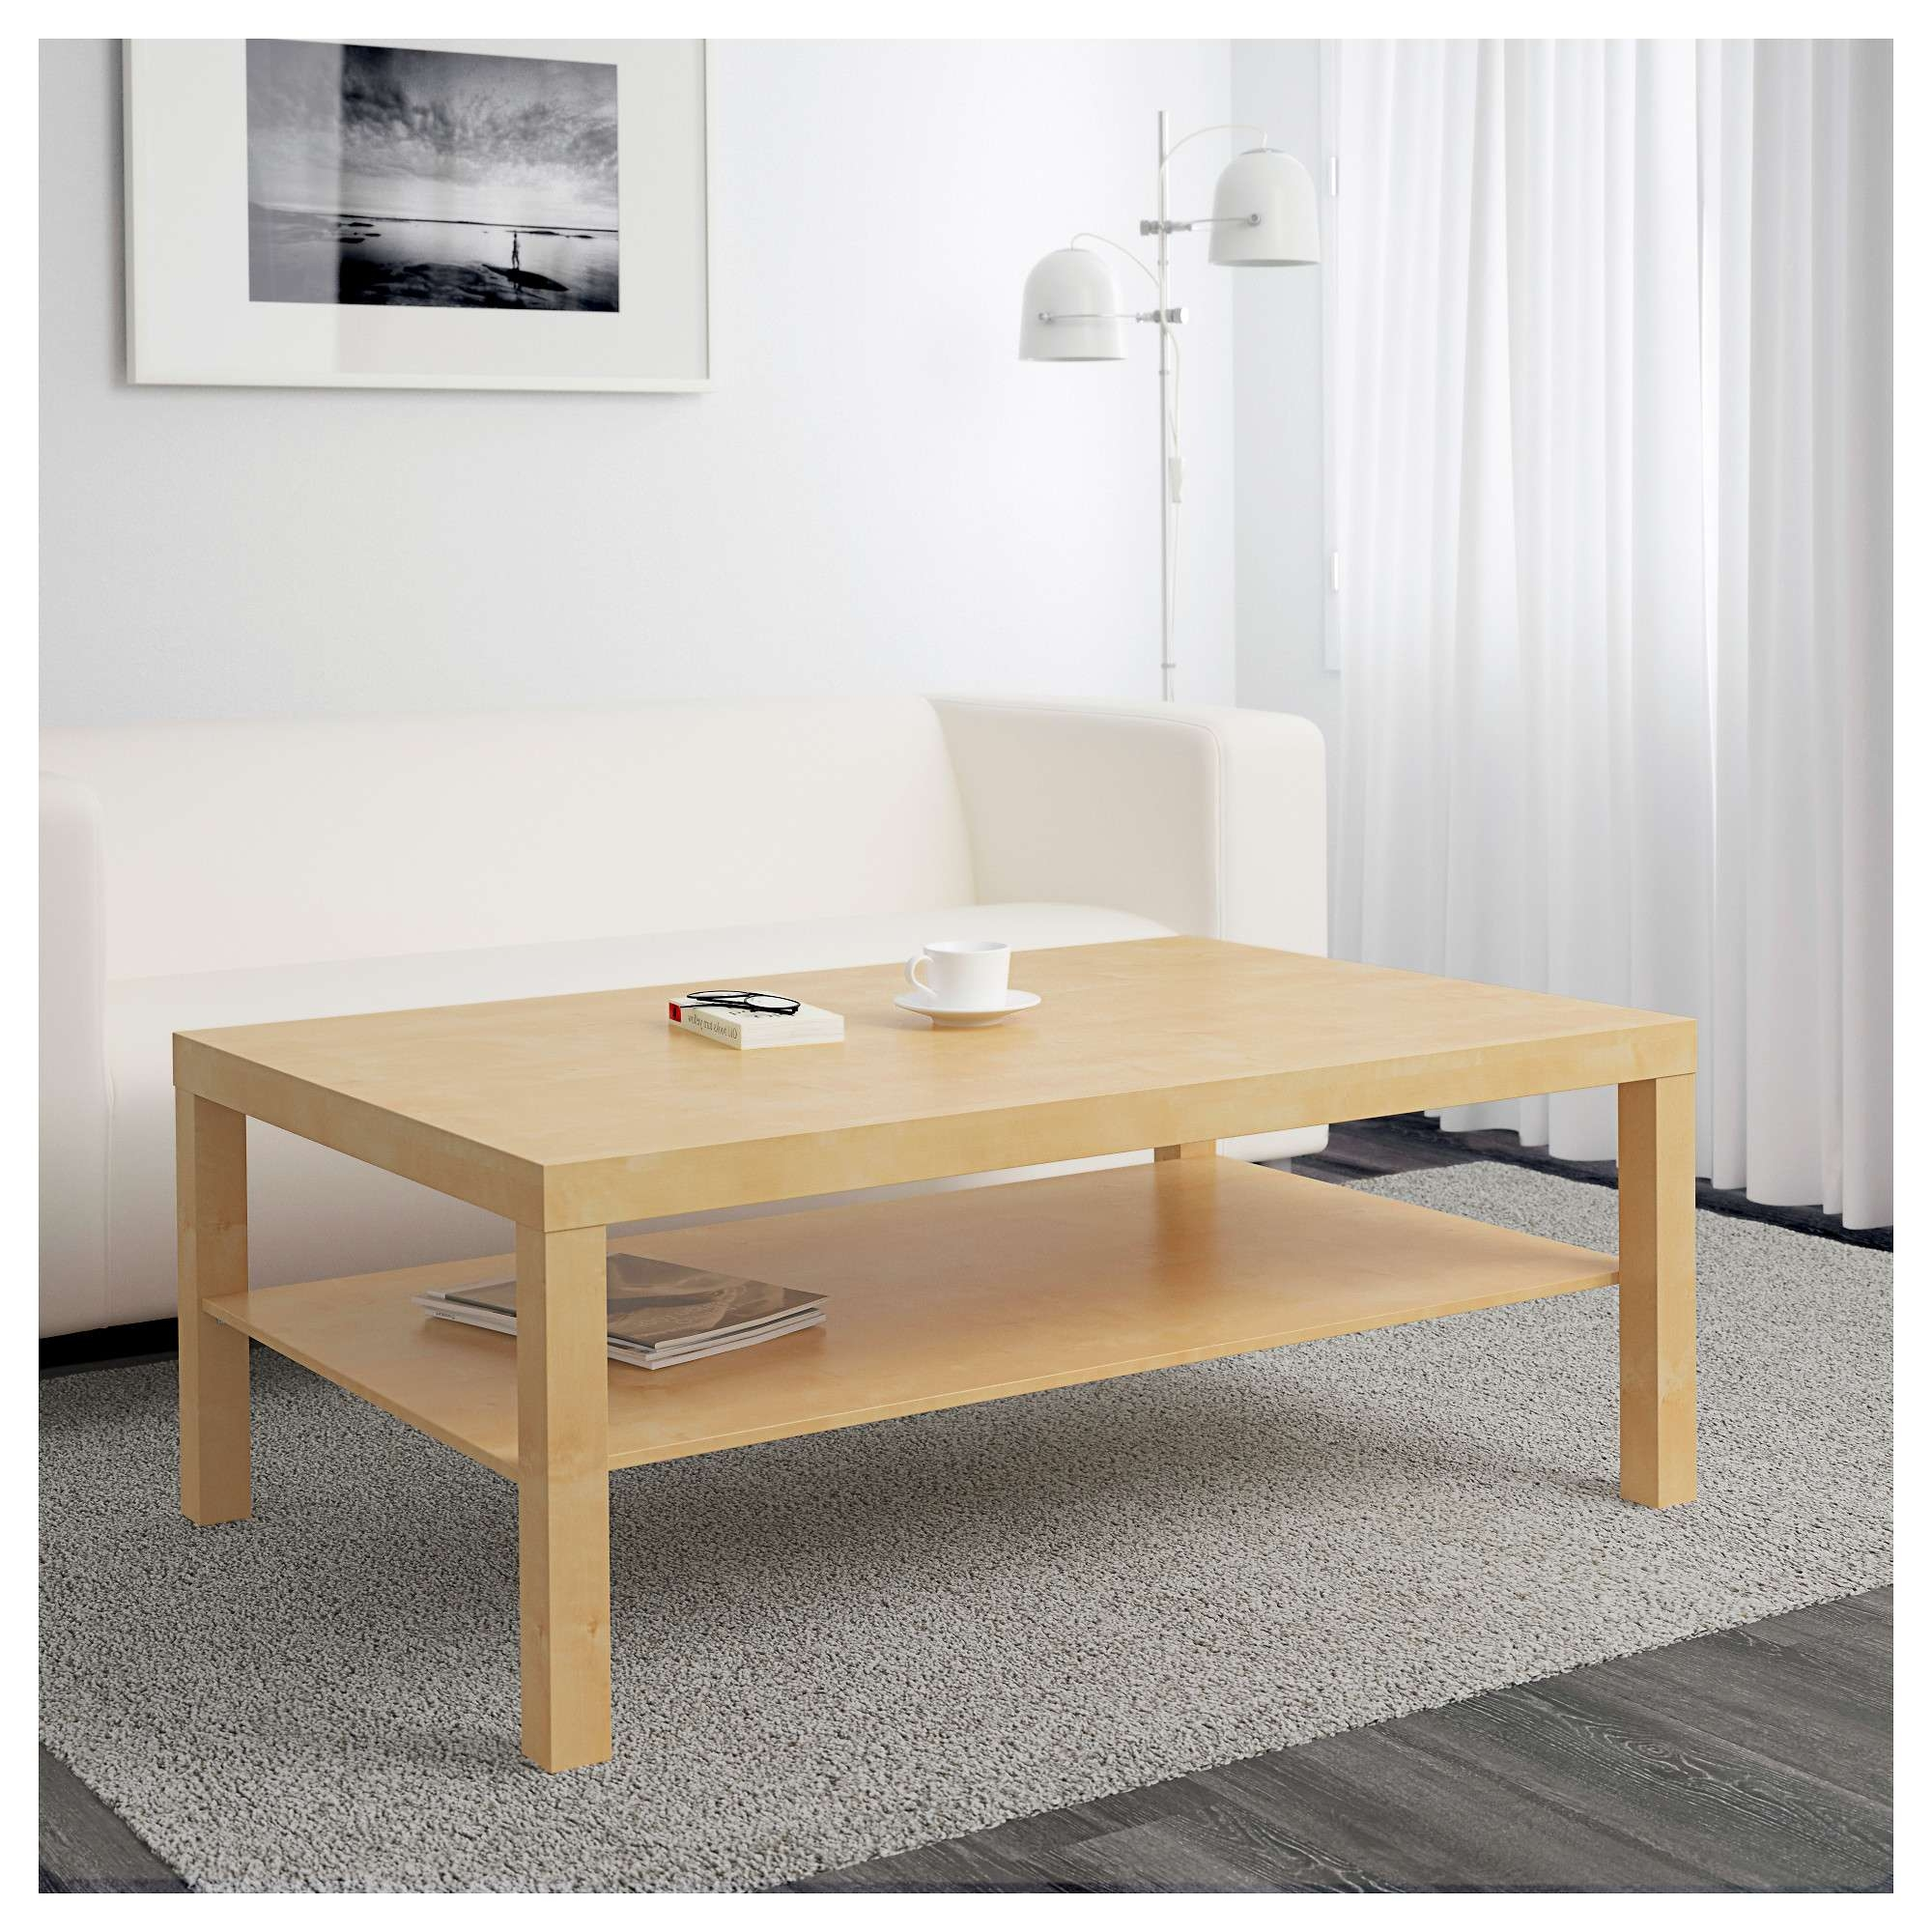 Lack Coffee Table – Birch Effect – Ikea Within Most Current Birch Coffee Tables (View 7 of 20)